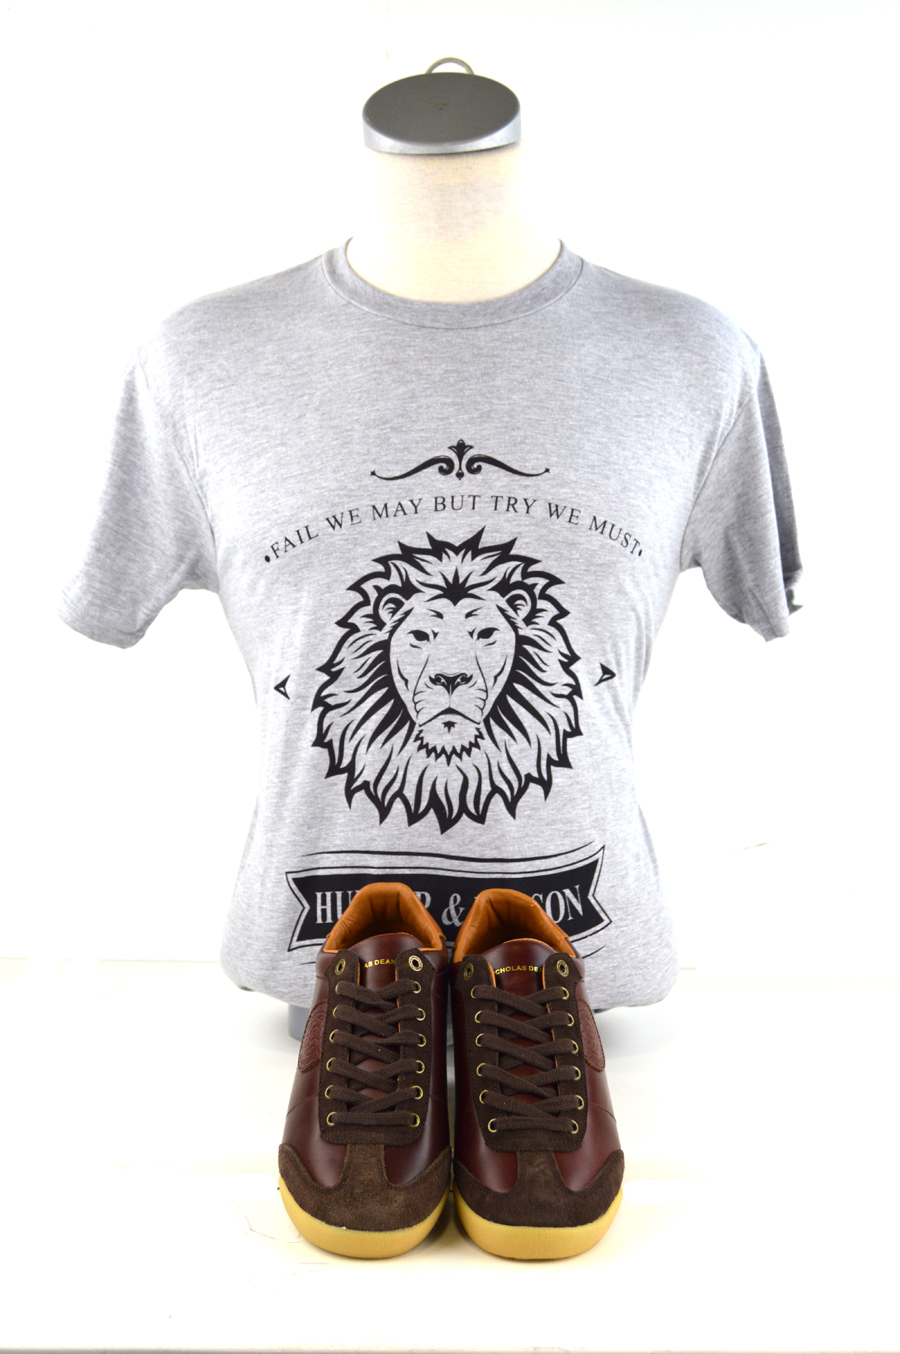 03 mod-shoes-retro-trainers-chestnut-colour-with-hunter-nelson-tshirt